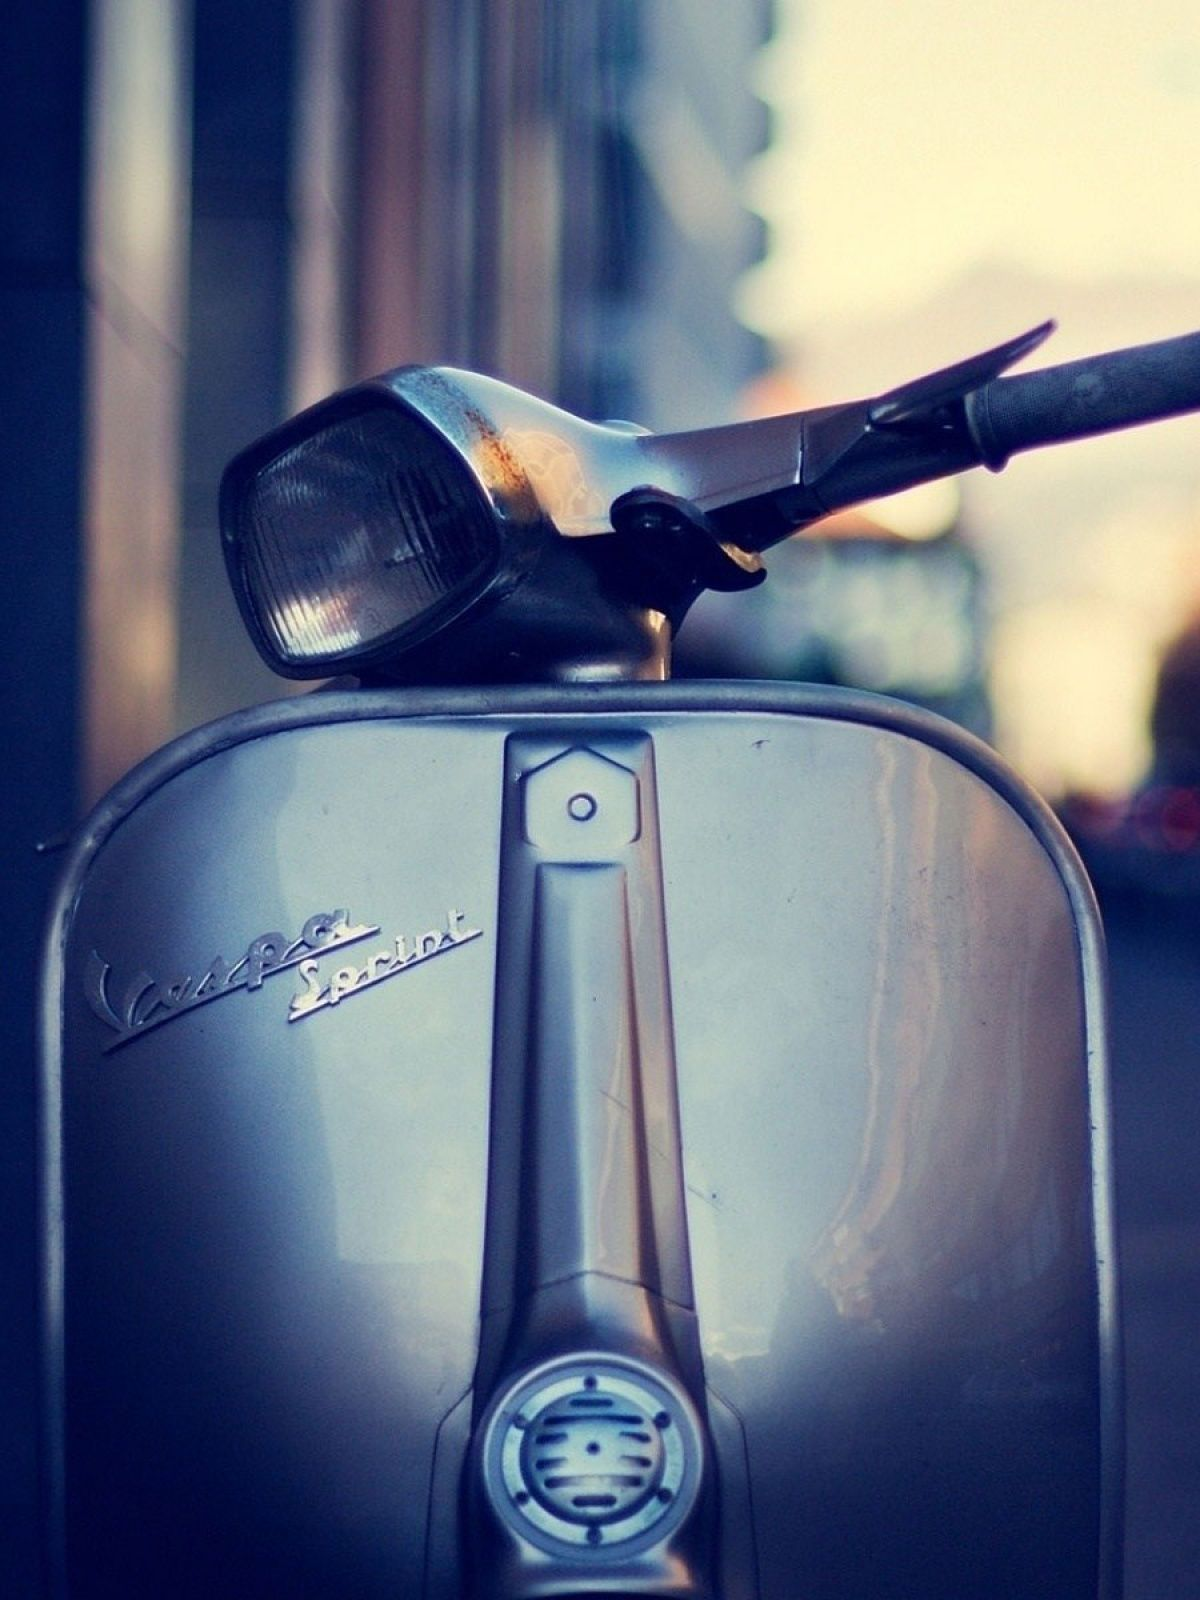 Vespa Phone Wallpapers Top Free Vespa Phone Backgrounds